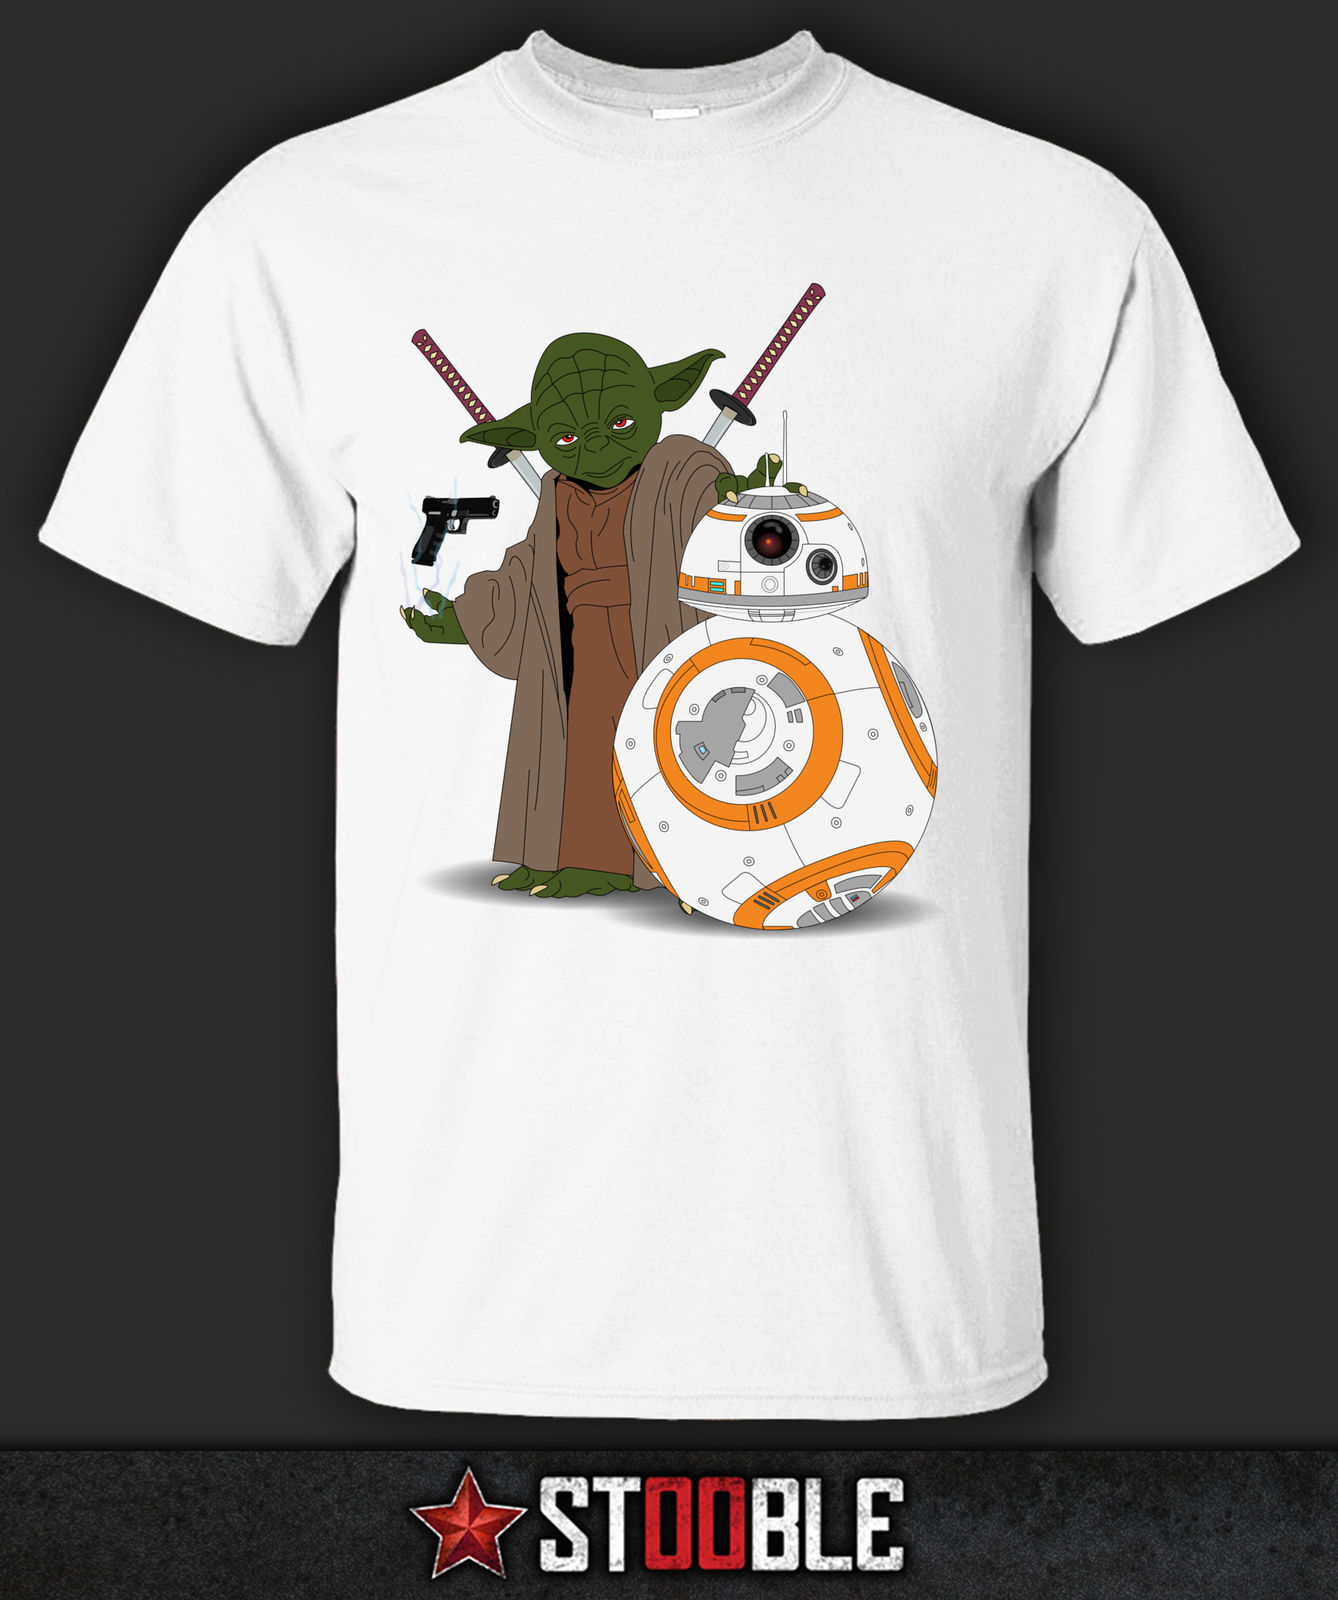 Ninja Yoda And Samureight T Shirt Direct from Stockist New T Shirts Funny Tops Tee New Unisex Funny Tops freeshipping in T Shirts from Men 39 s Clothing